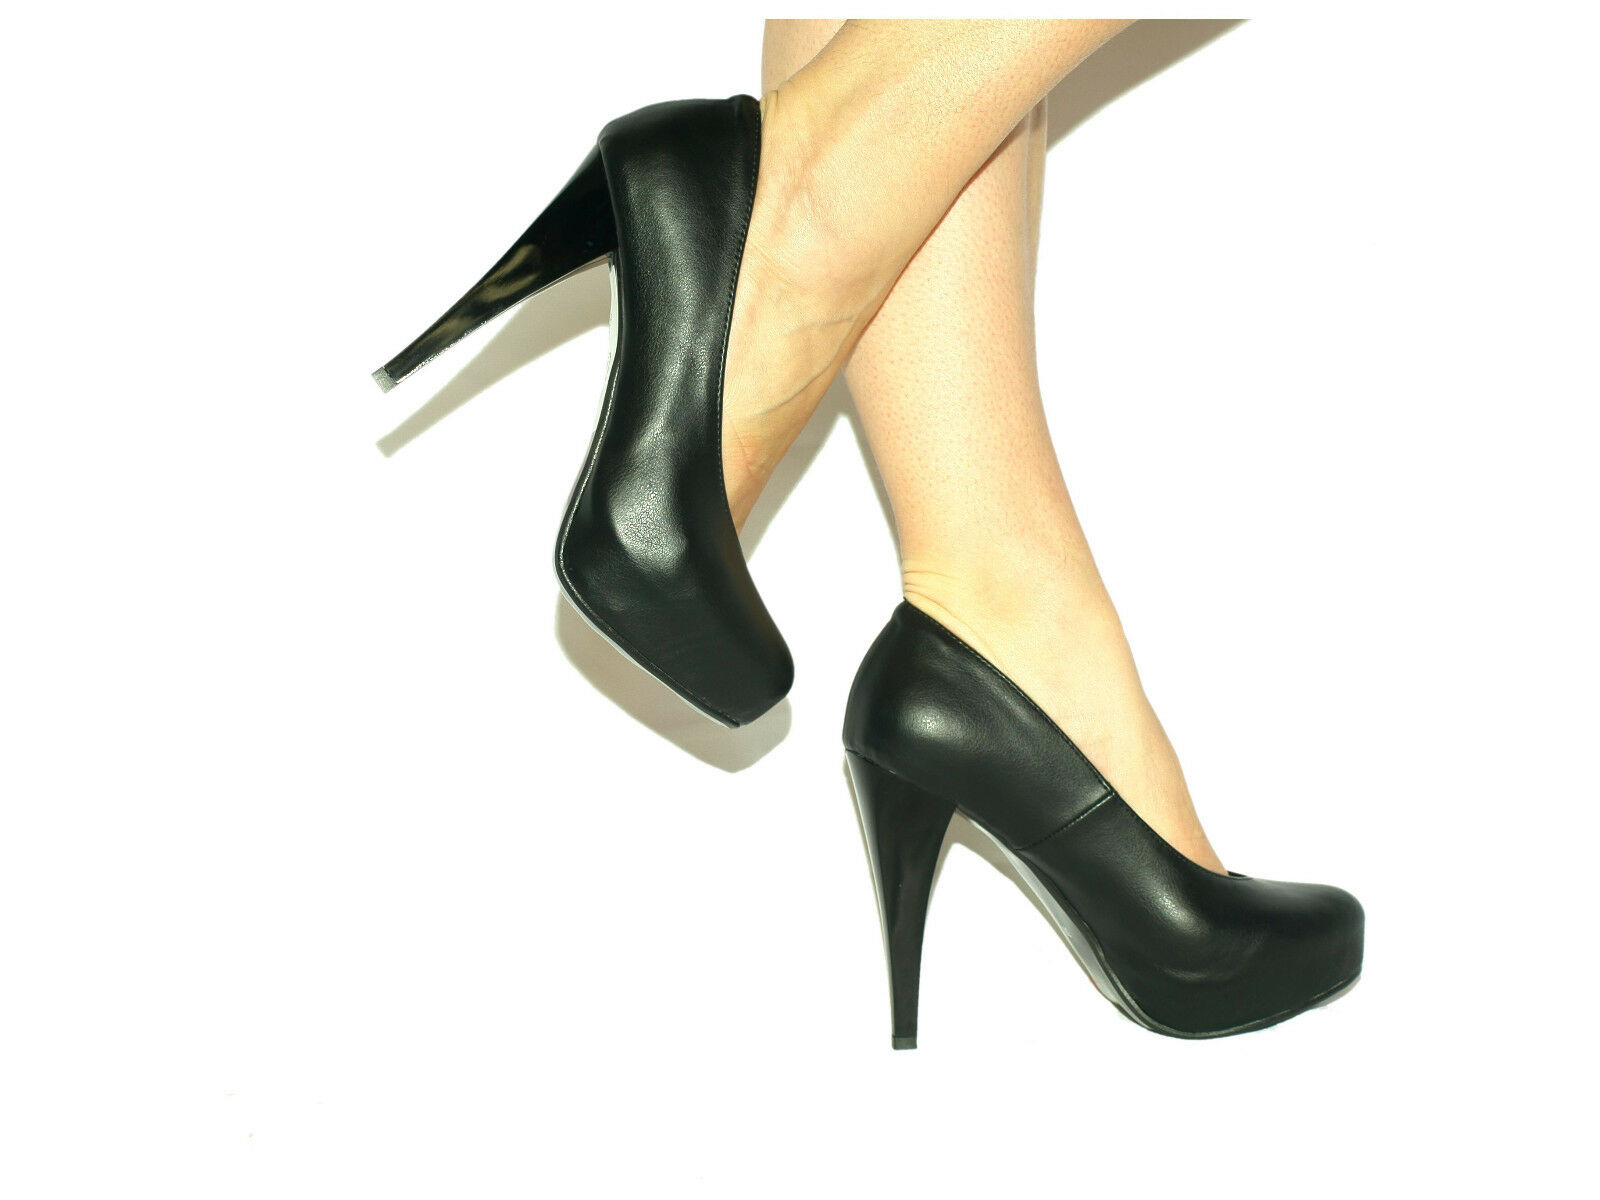 PROMOTION     BOOTS LEATHER100% EXCLUSIVE FETISH  SIZE 4-12  HEEL 14CM